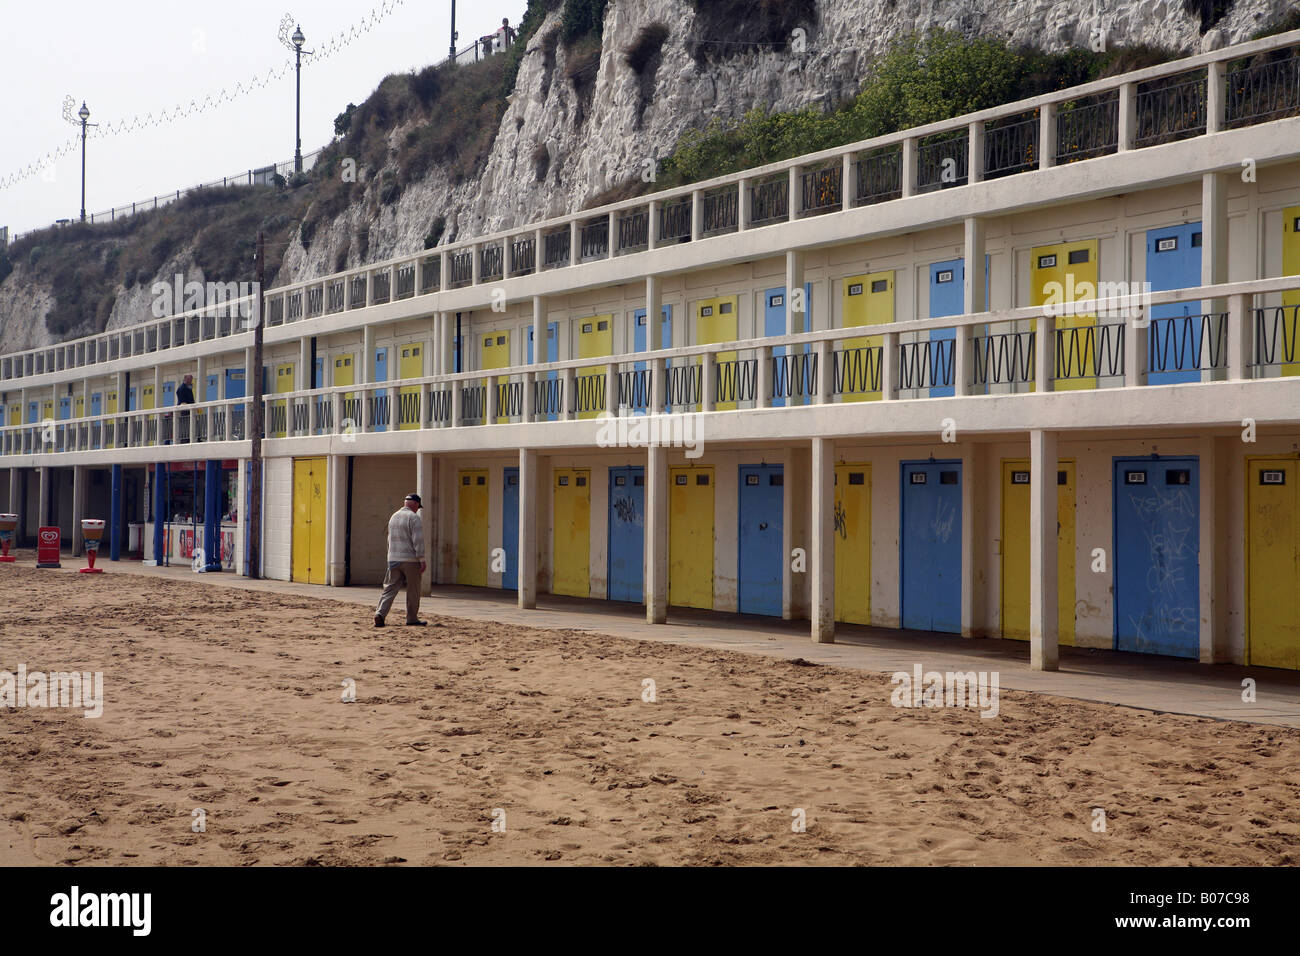 Pic By Paul Grover Pic Shows Beach huts in Viking Bay in Broadstairs on the Kent Coast - Stock Image